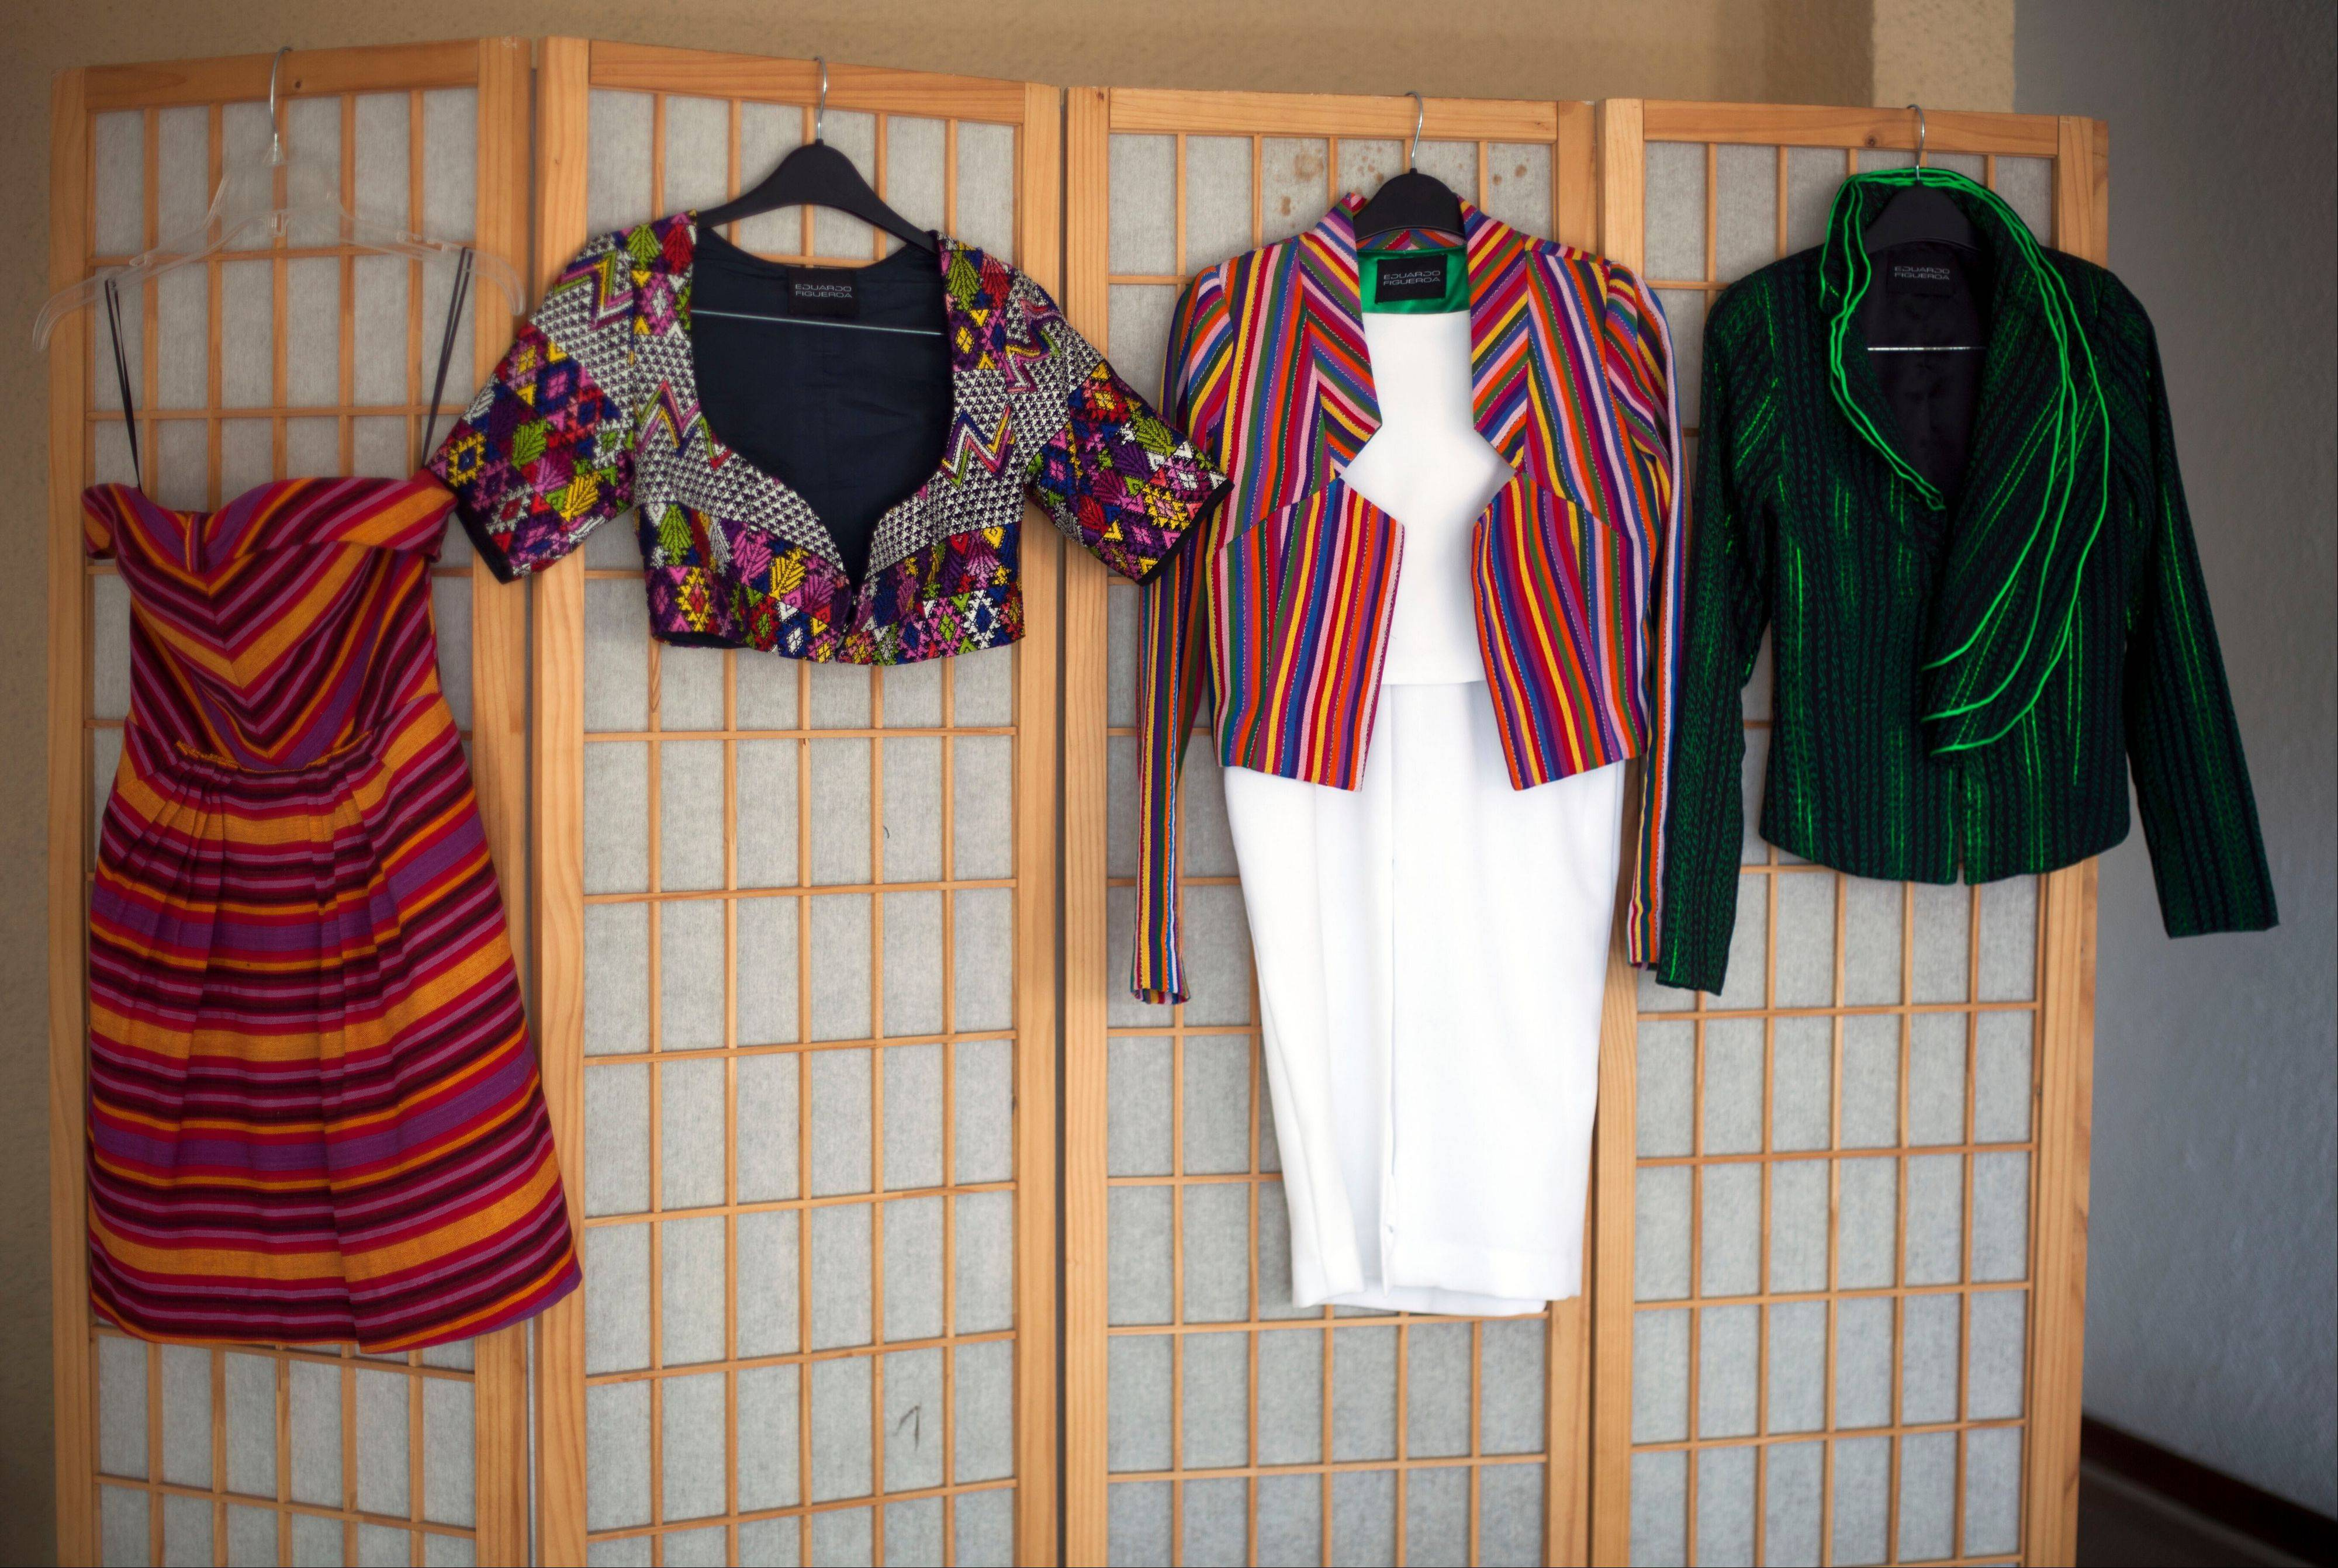 Guatemalan Eduardo Figueroa, a high-couture designer, said modernizing Mayan designs helps non-indigenous people appreciate this �ethnic� fashion.